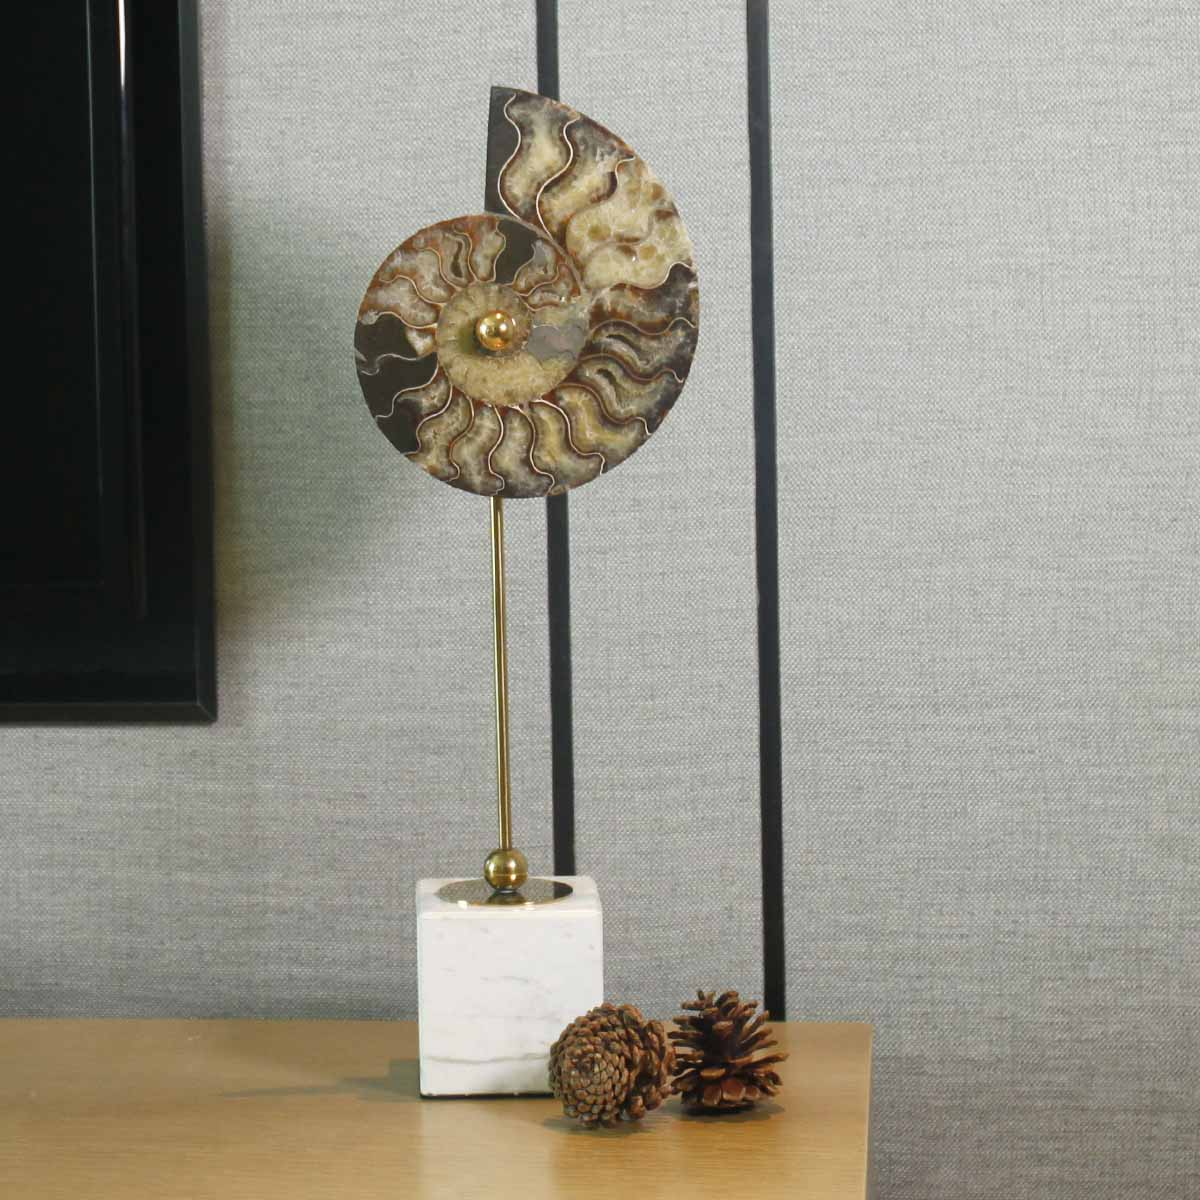 Nautilus Shell Remians Ornament Large Abstract Sculpture White Square Marble Base Post Modernism Villa Decor Living Room